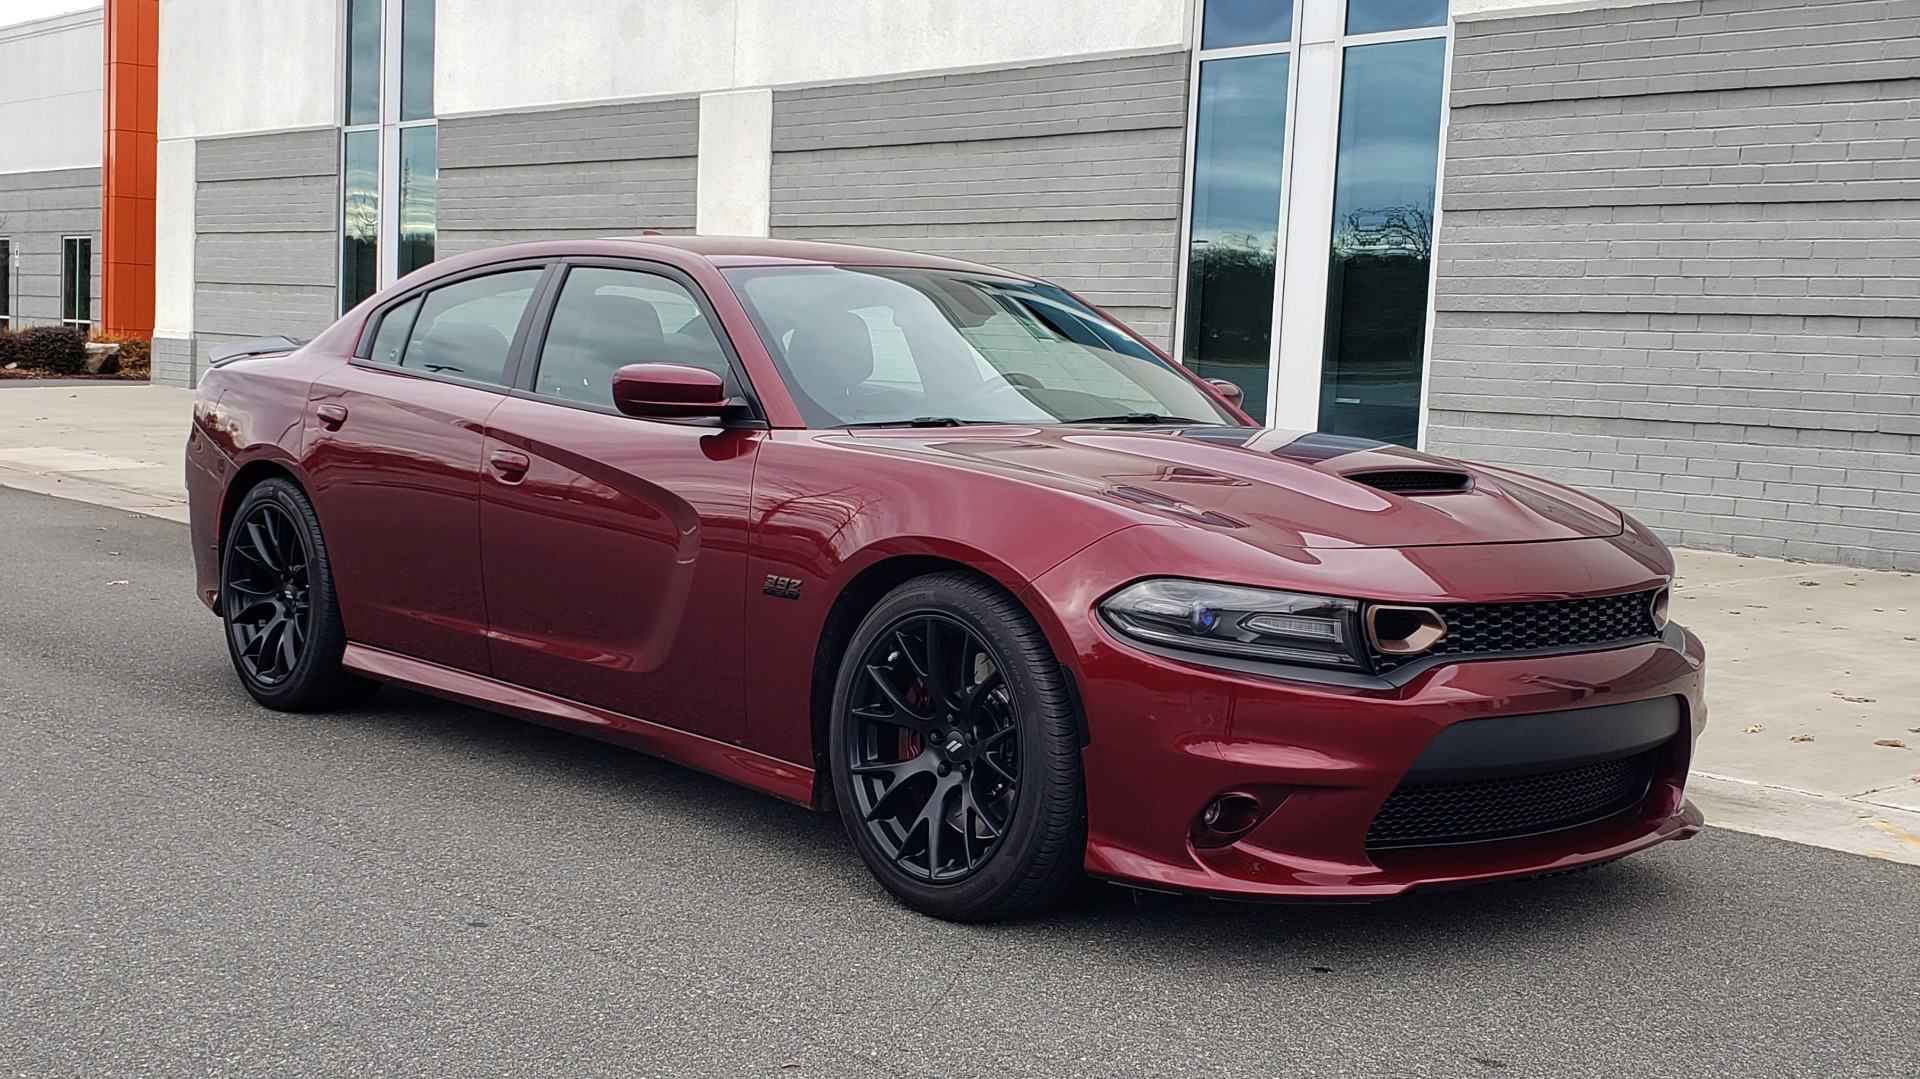 Used 2018 Dodge CHARGER R/T SCAT PACK / 6.4L 485HP / 8-SPD AUTO / HEATED / REARVIEW for sale Sold at Formula Imports in Charlotte NC 28227 5